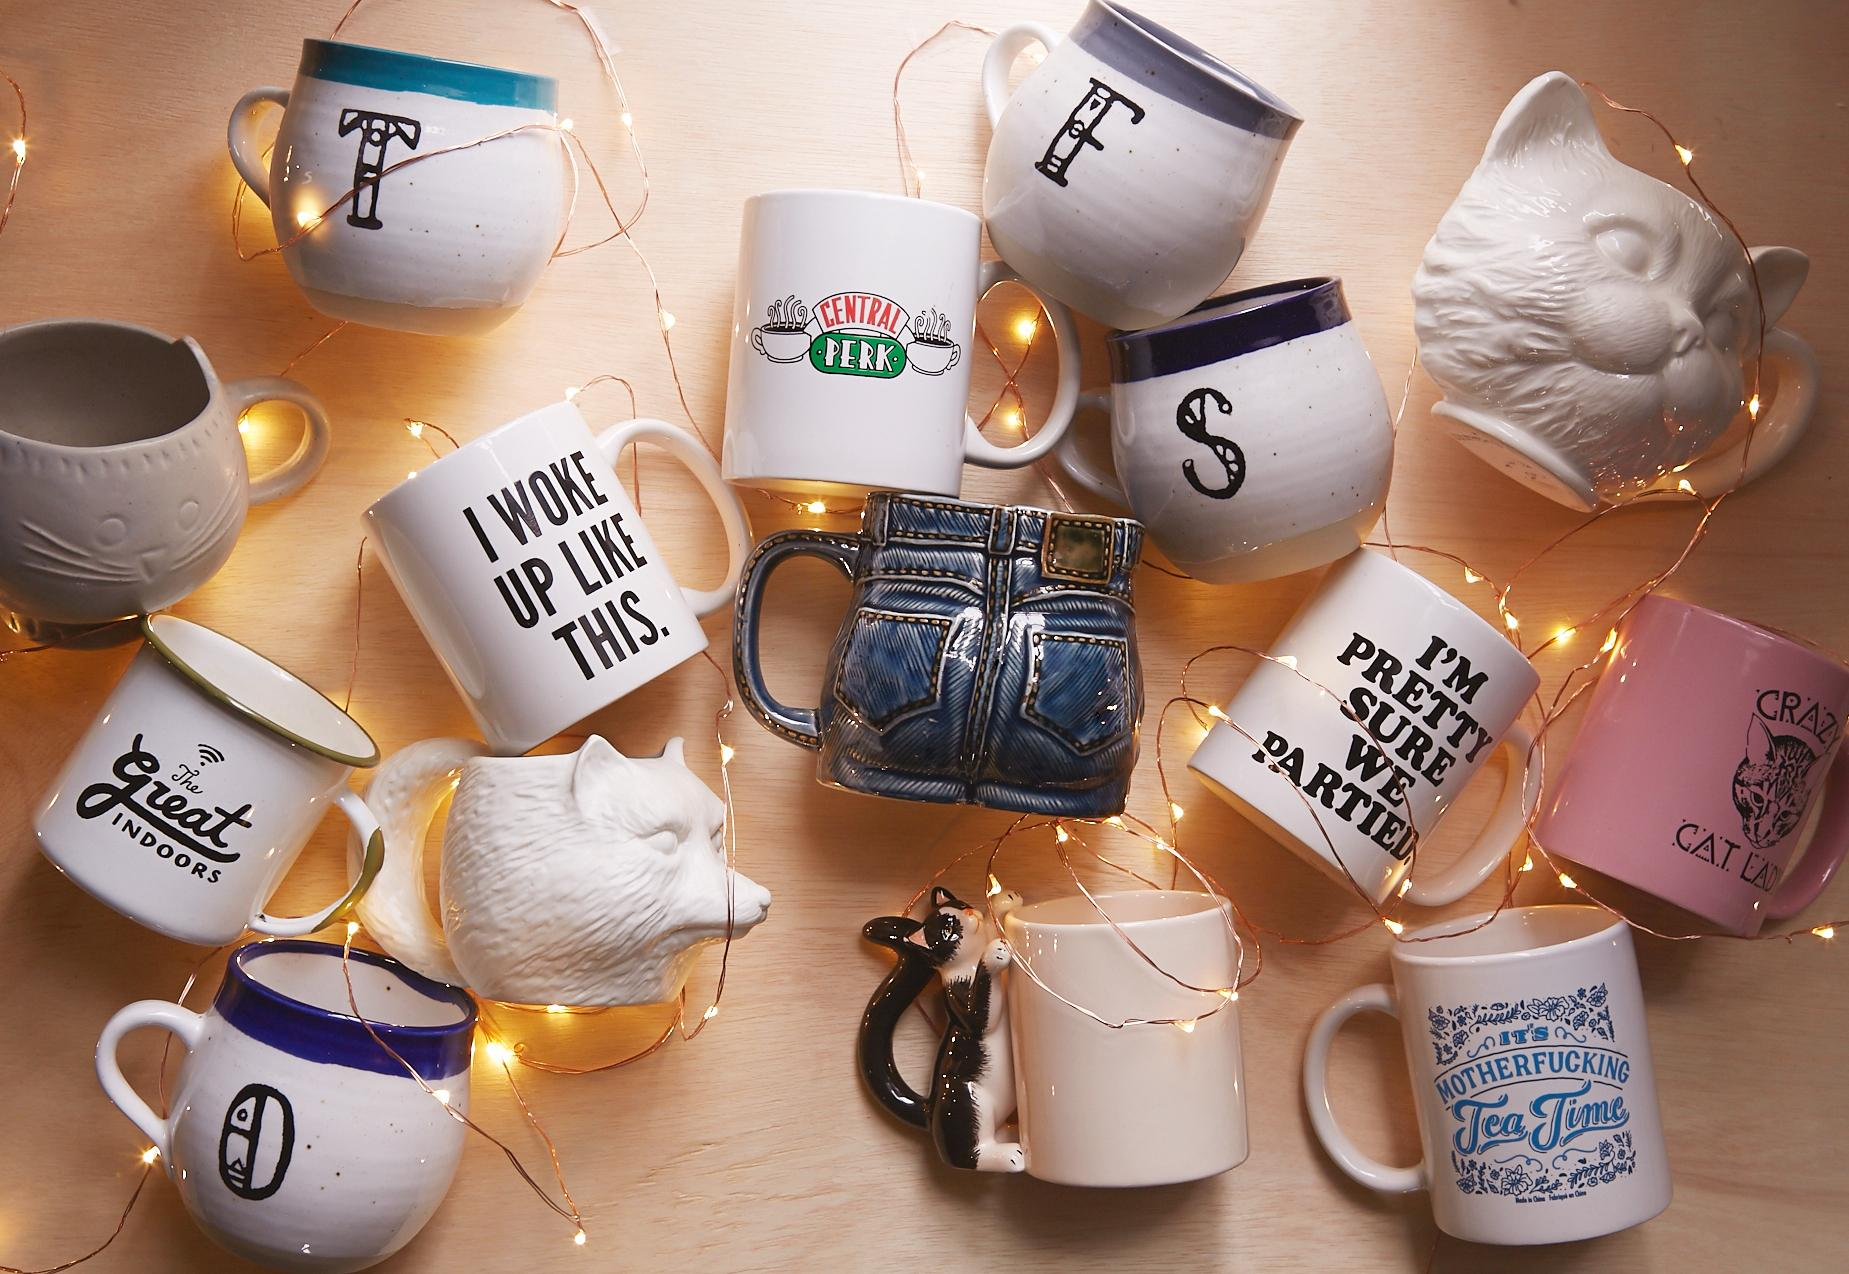 Still stumped on what to give? The perfect mug is the perfect gift. http://t.co/Z0Xvz3T4f8 http://t.co/7hjUJfj1no